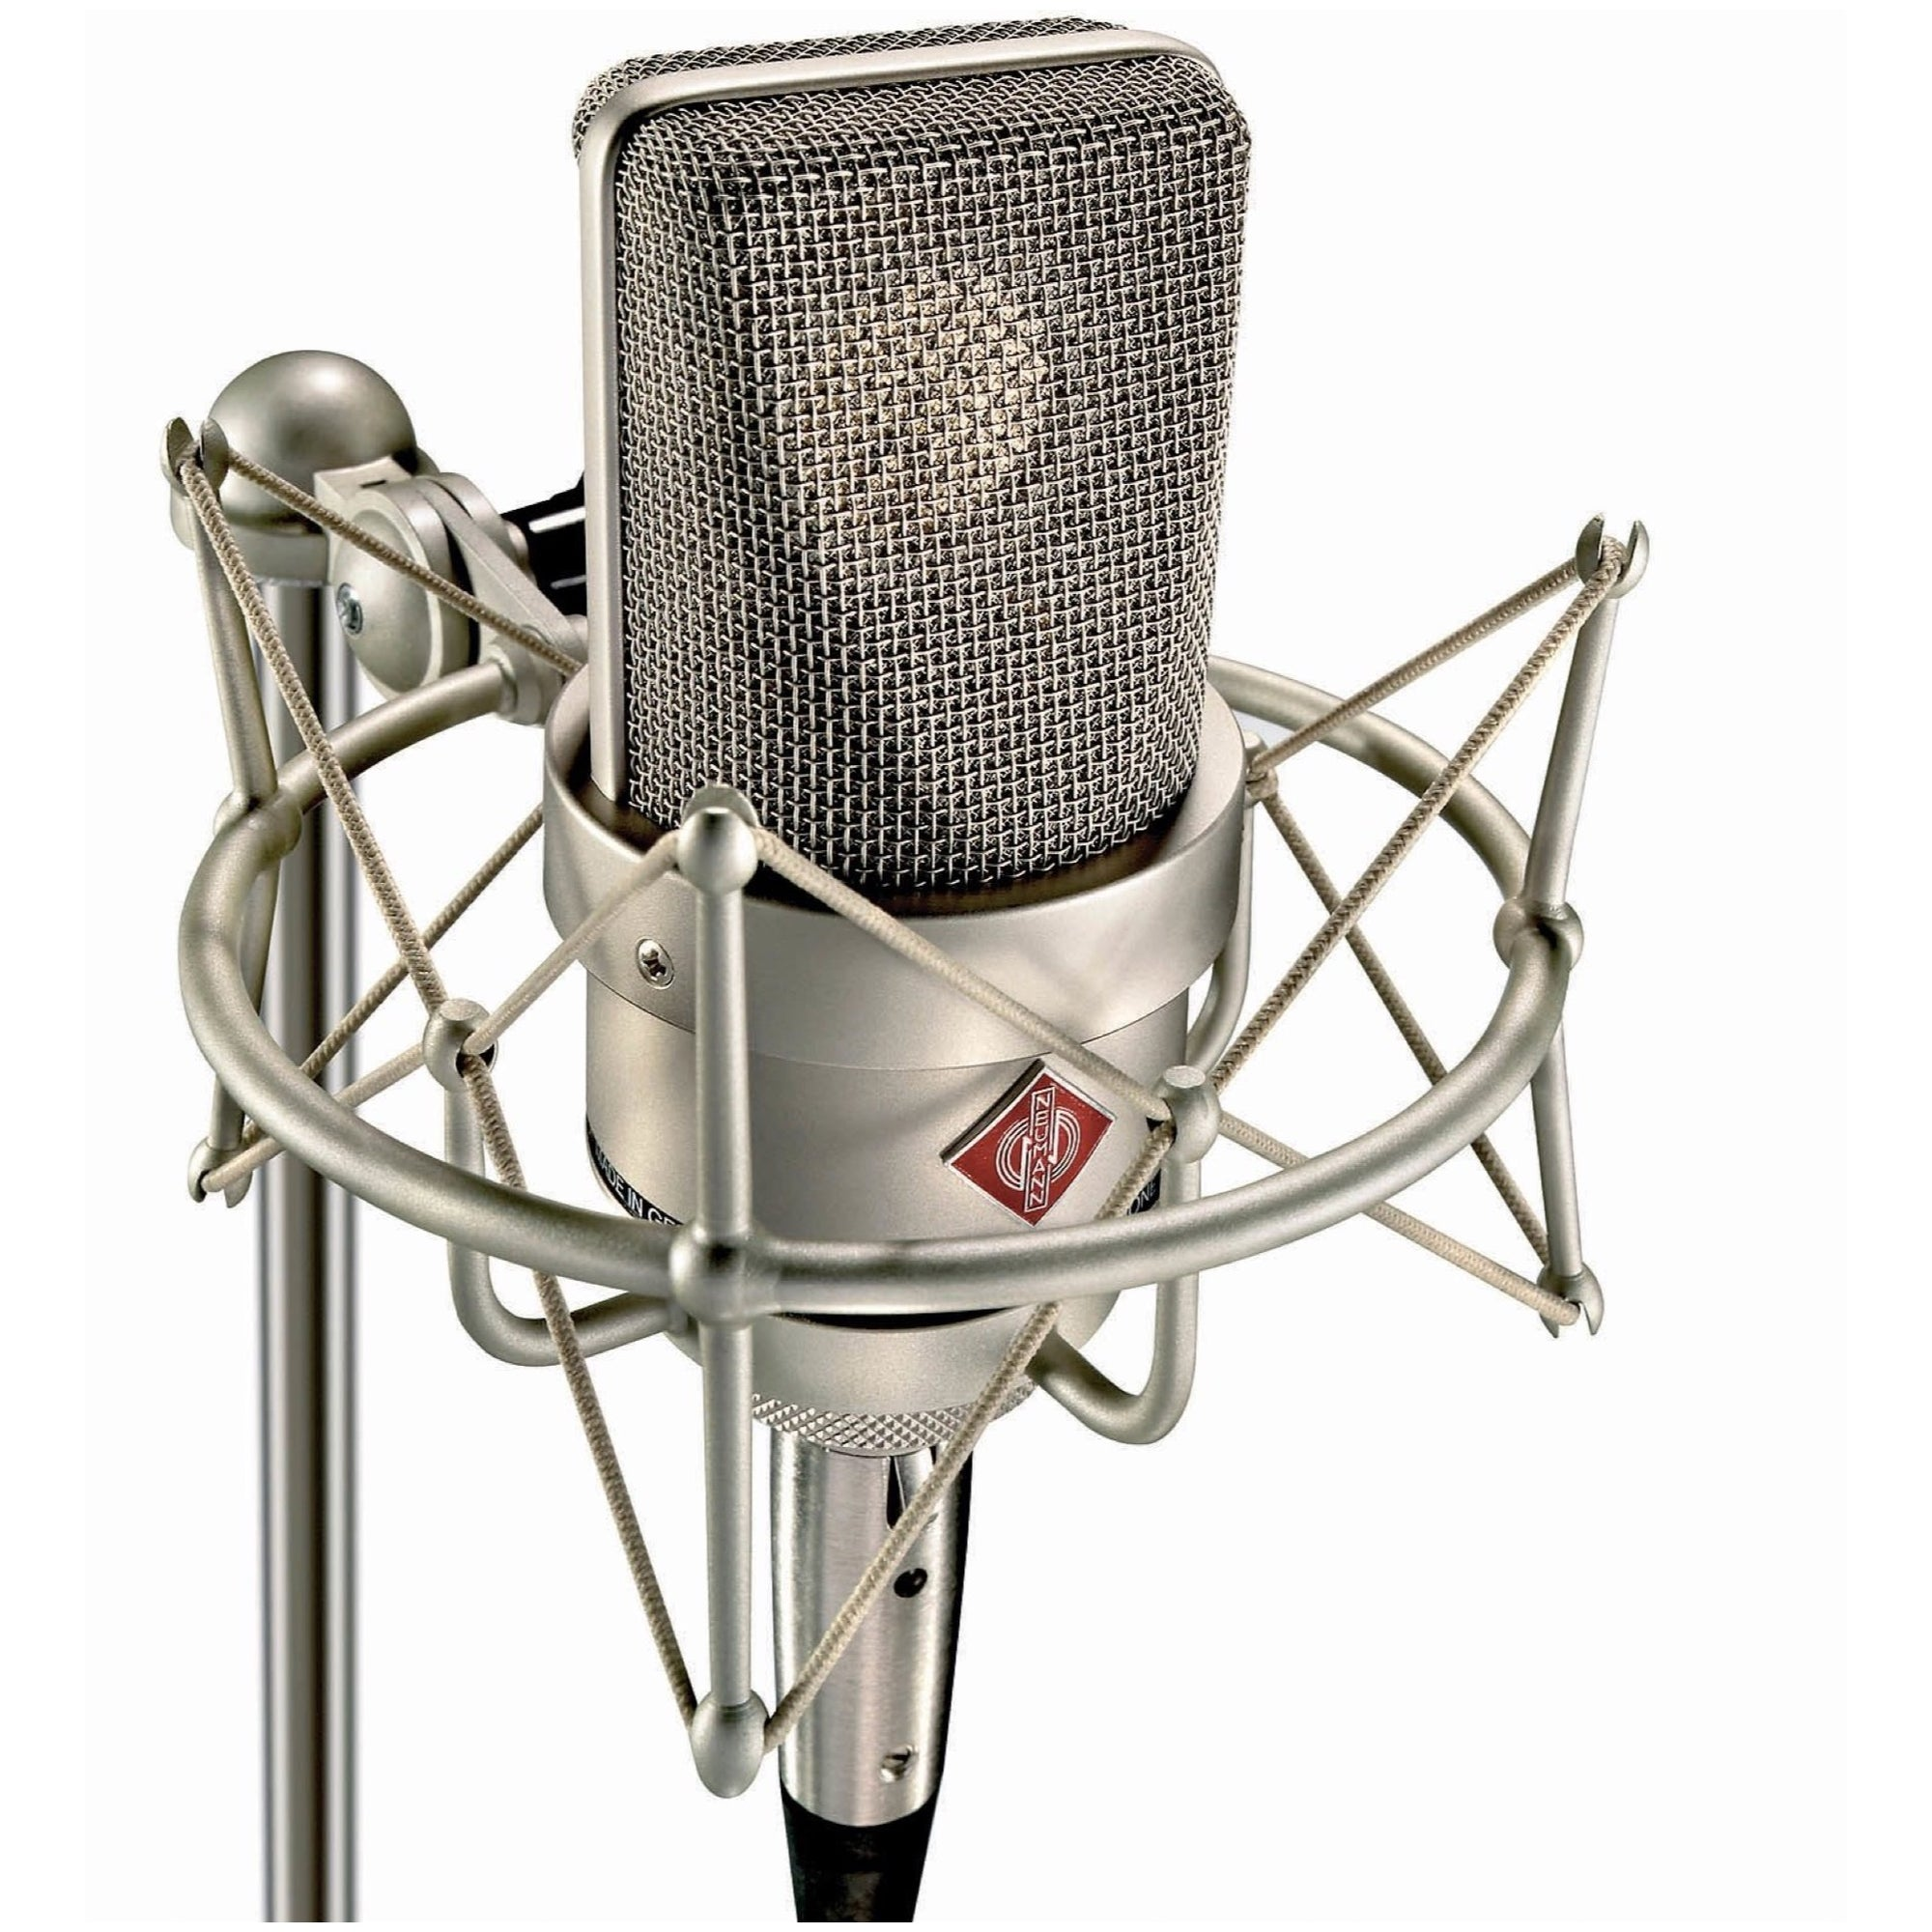 Neumann TLM 103 Anniversary Large-Diaphragm Condenser Microphone with Shockmount and Case, Nickel